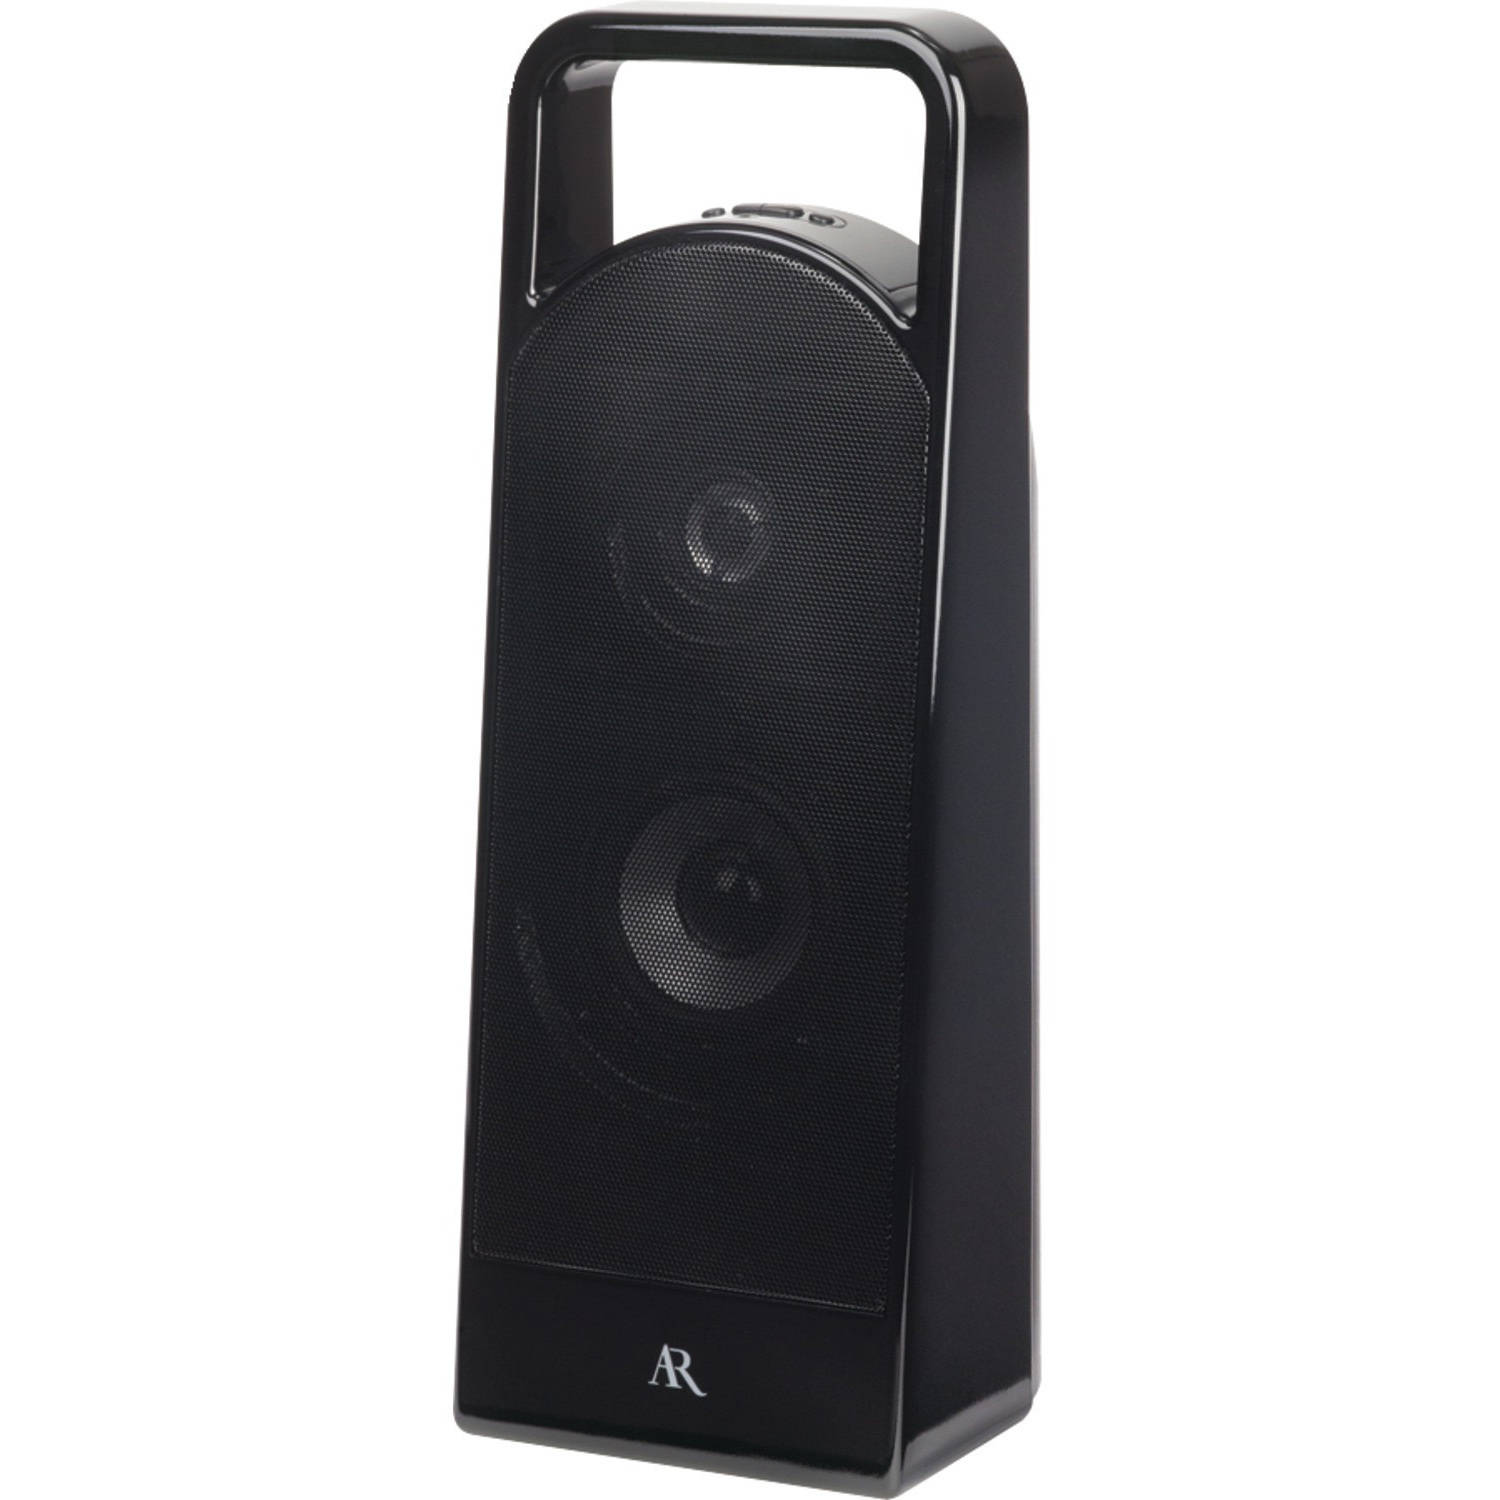 Acoustic Research AS3BK Portable Bluetooth Wireless Speaker with 3.5mm Aux Input by Accoustic Research